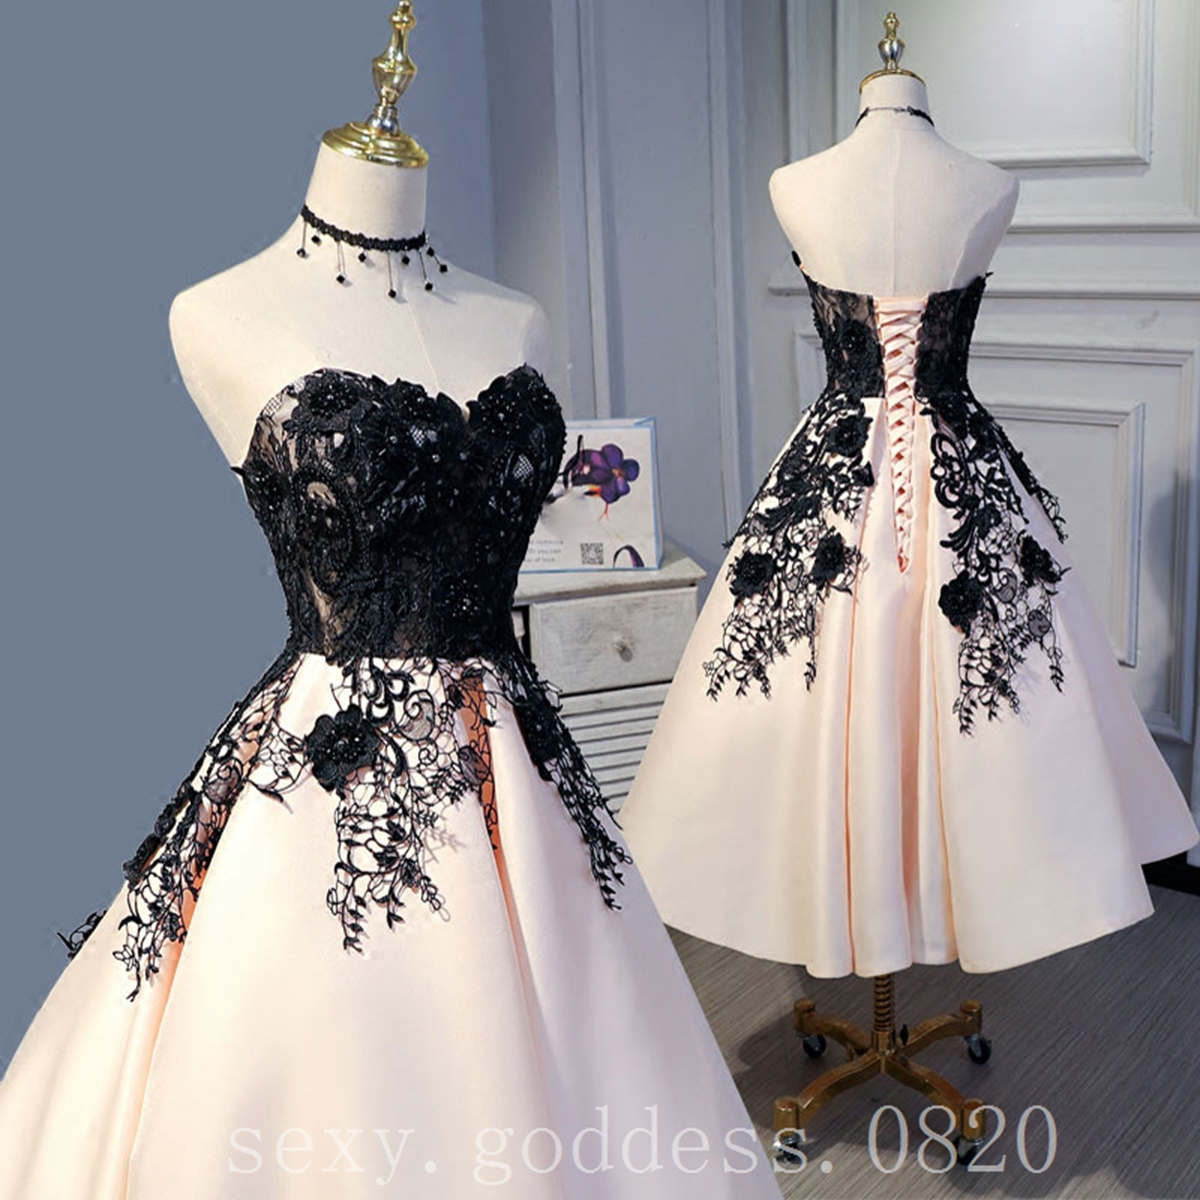 fd9020d73c170 Details about Black Lace Beaded Short Prom Dresses Sweetheart Homecoming  Cocktail Party Gowns